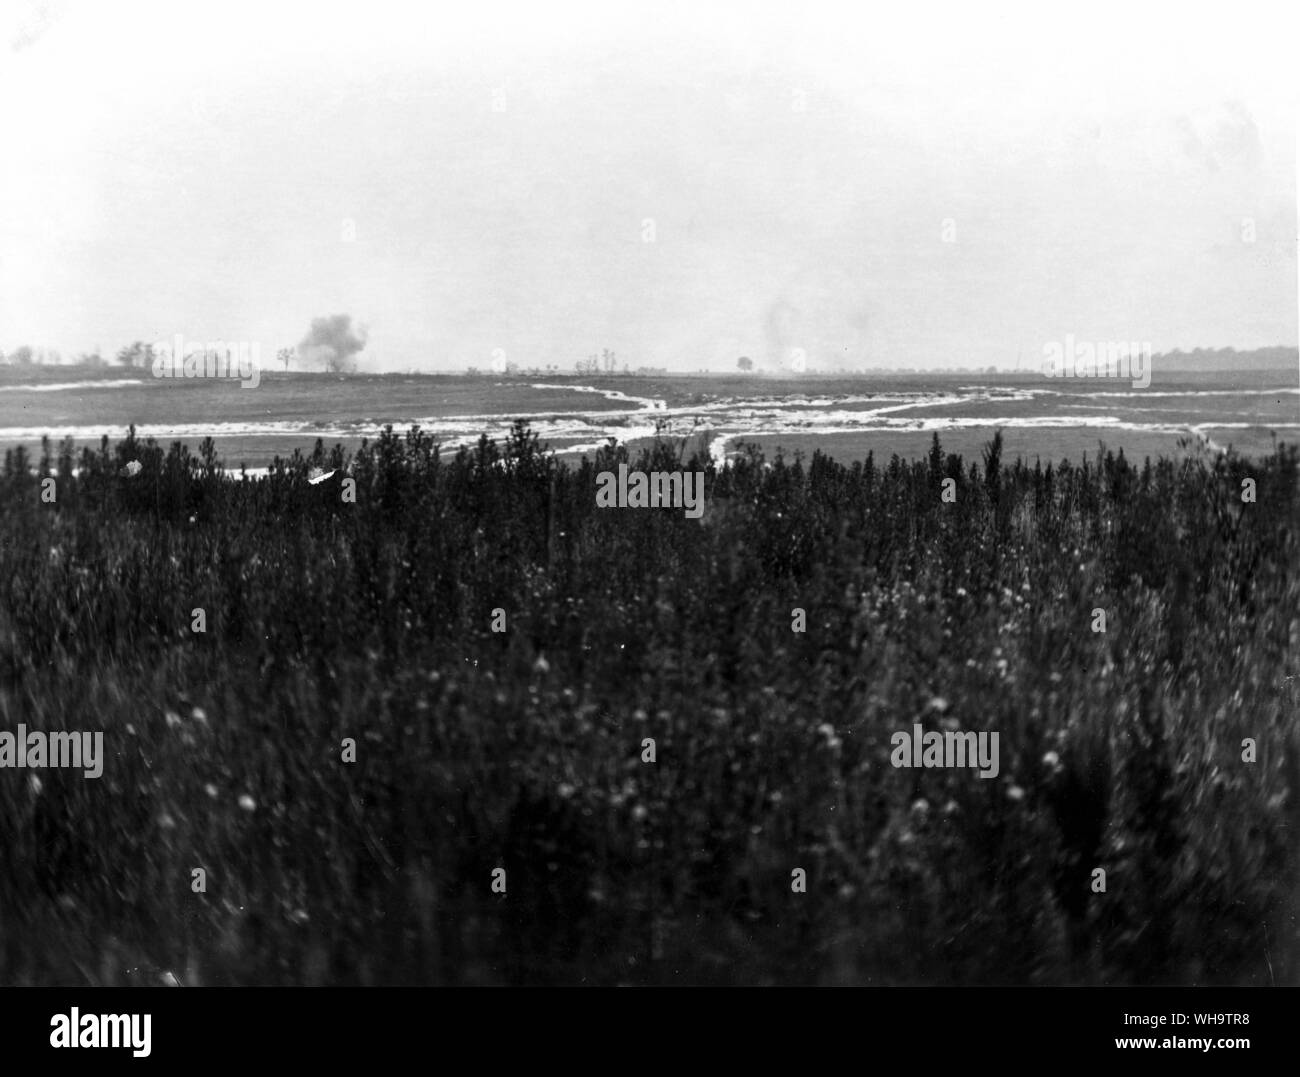 WW1/France: Panoramic view of the Somme battlefield, July 1916. Stock Photo